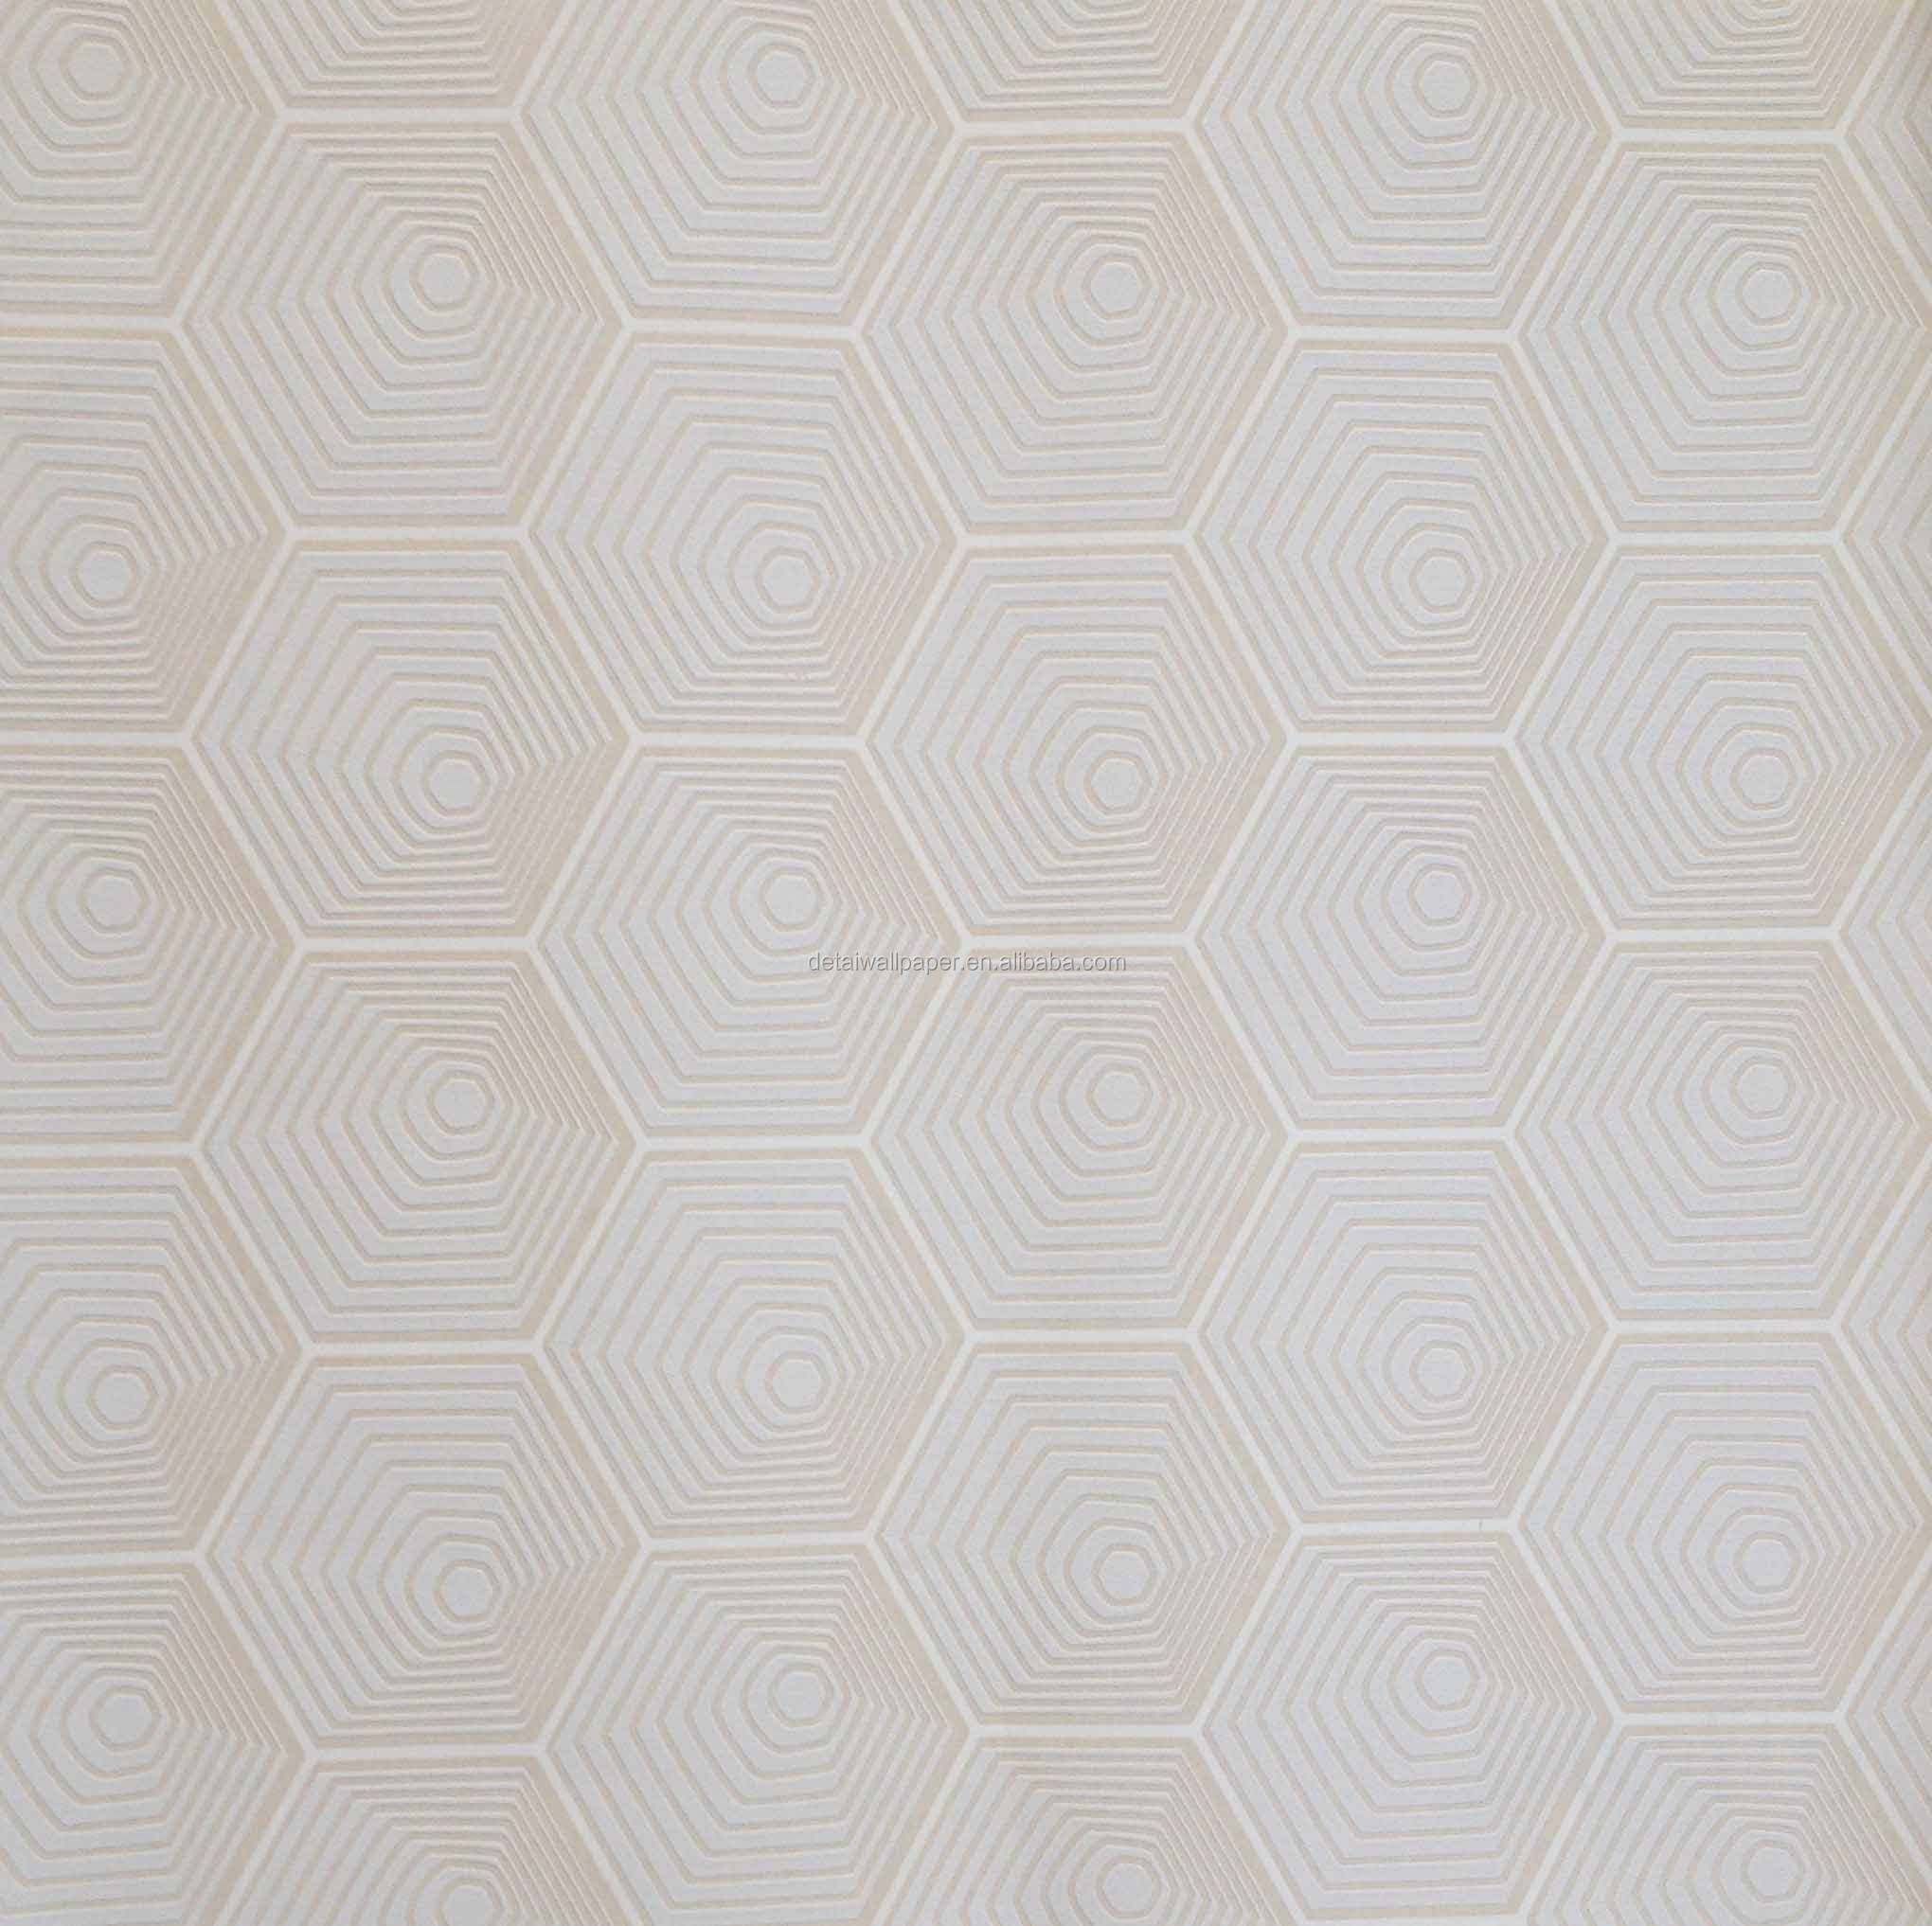 Detai felt wall covering